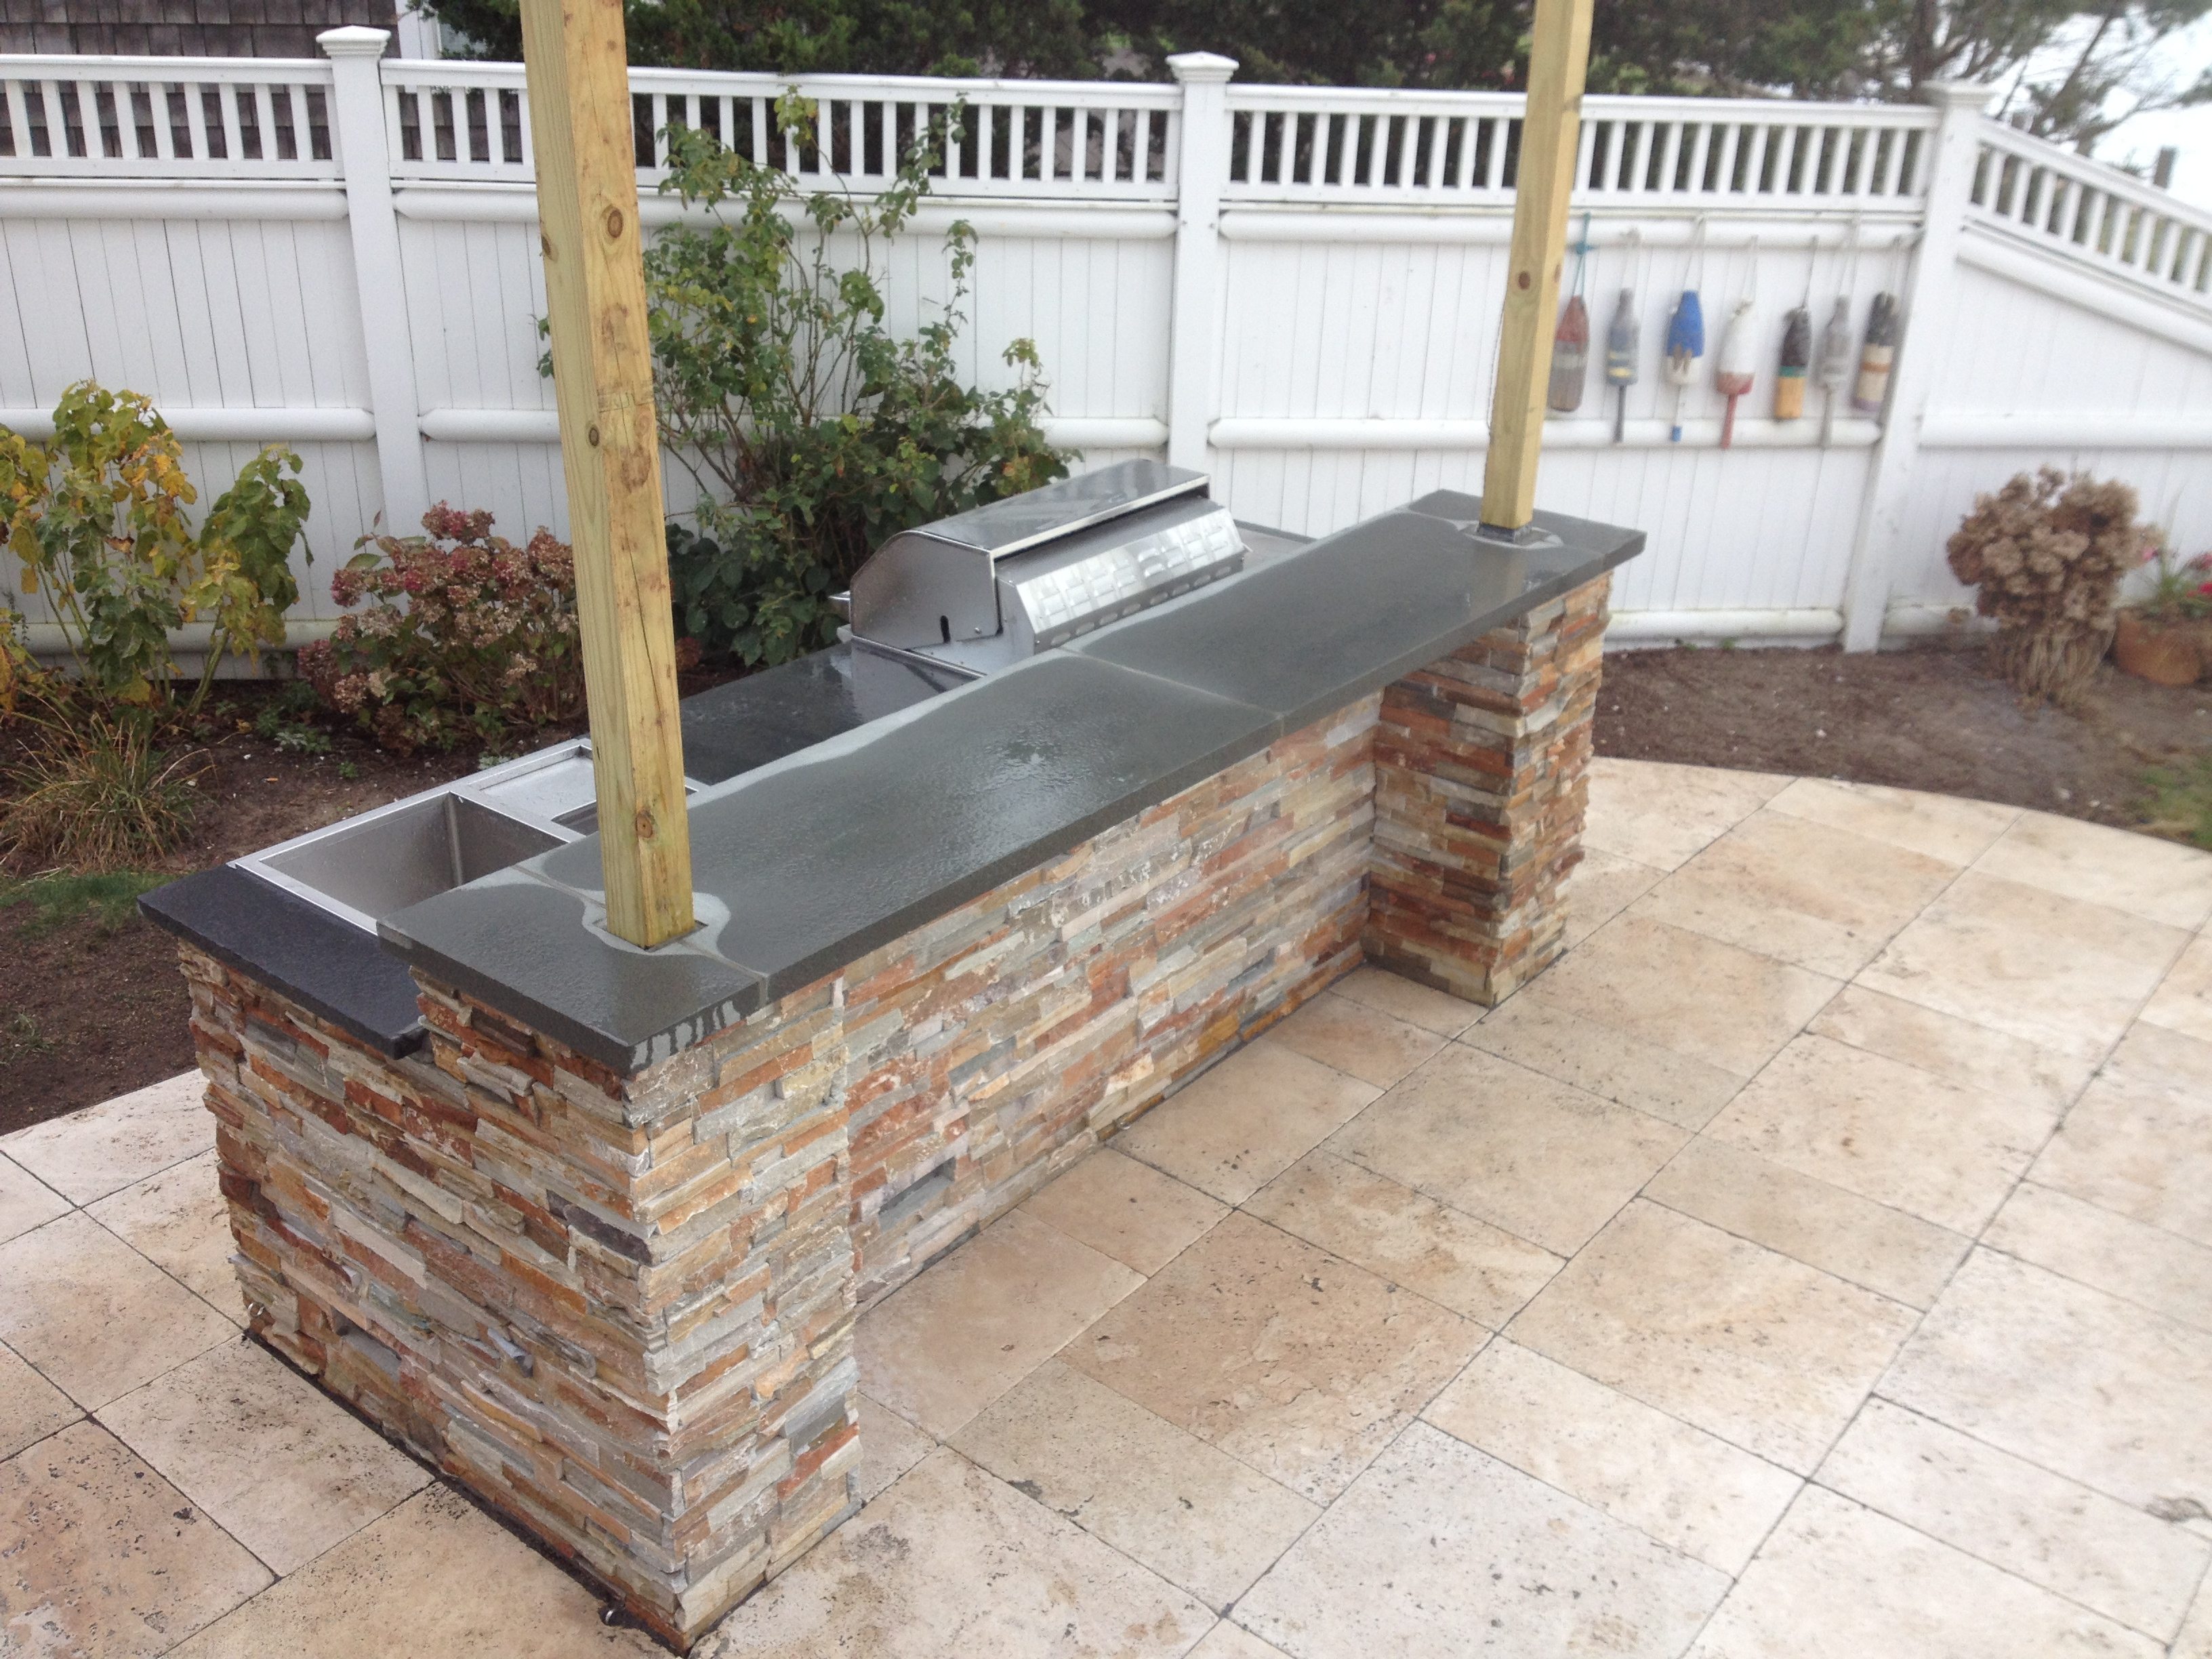 Earthworks Cape Cod Firepits Fireplaces Hardscape Service pertaining to size 3264 X 2448